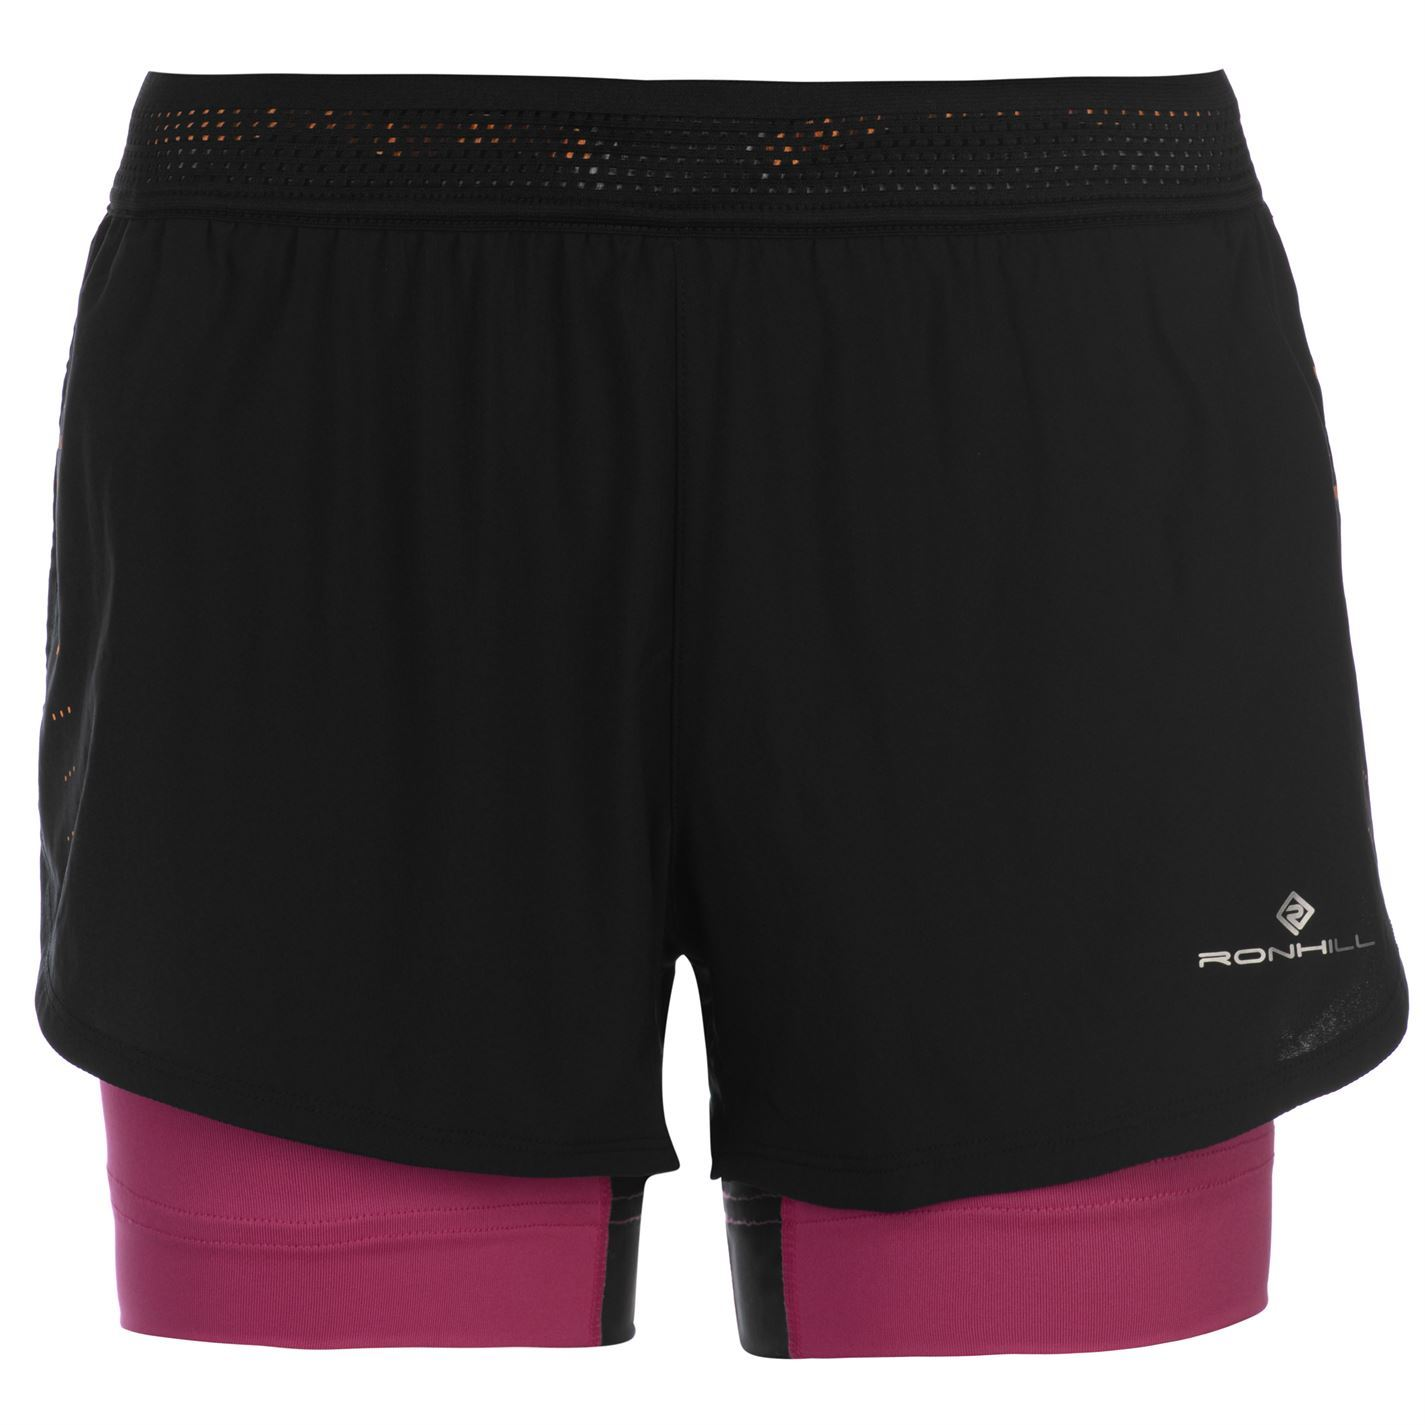 Clothing & Accessories Black Shorts Ronhill Infinity Marathon Twin Womens Running Shorts